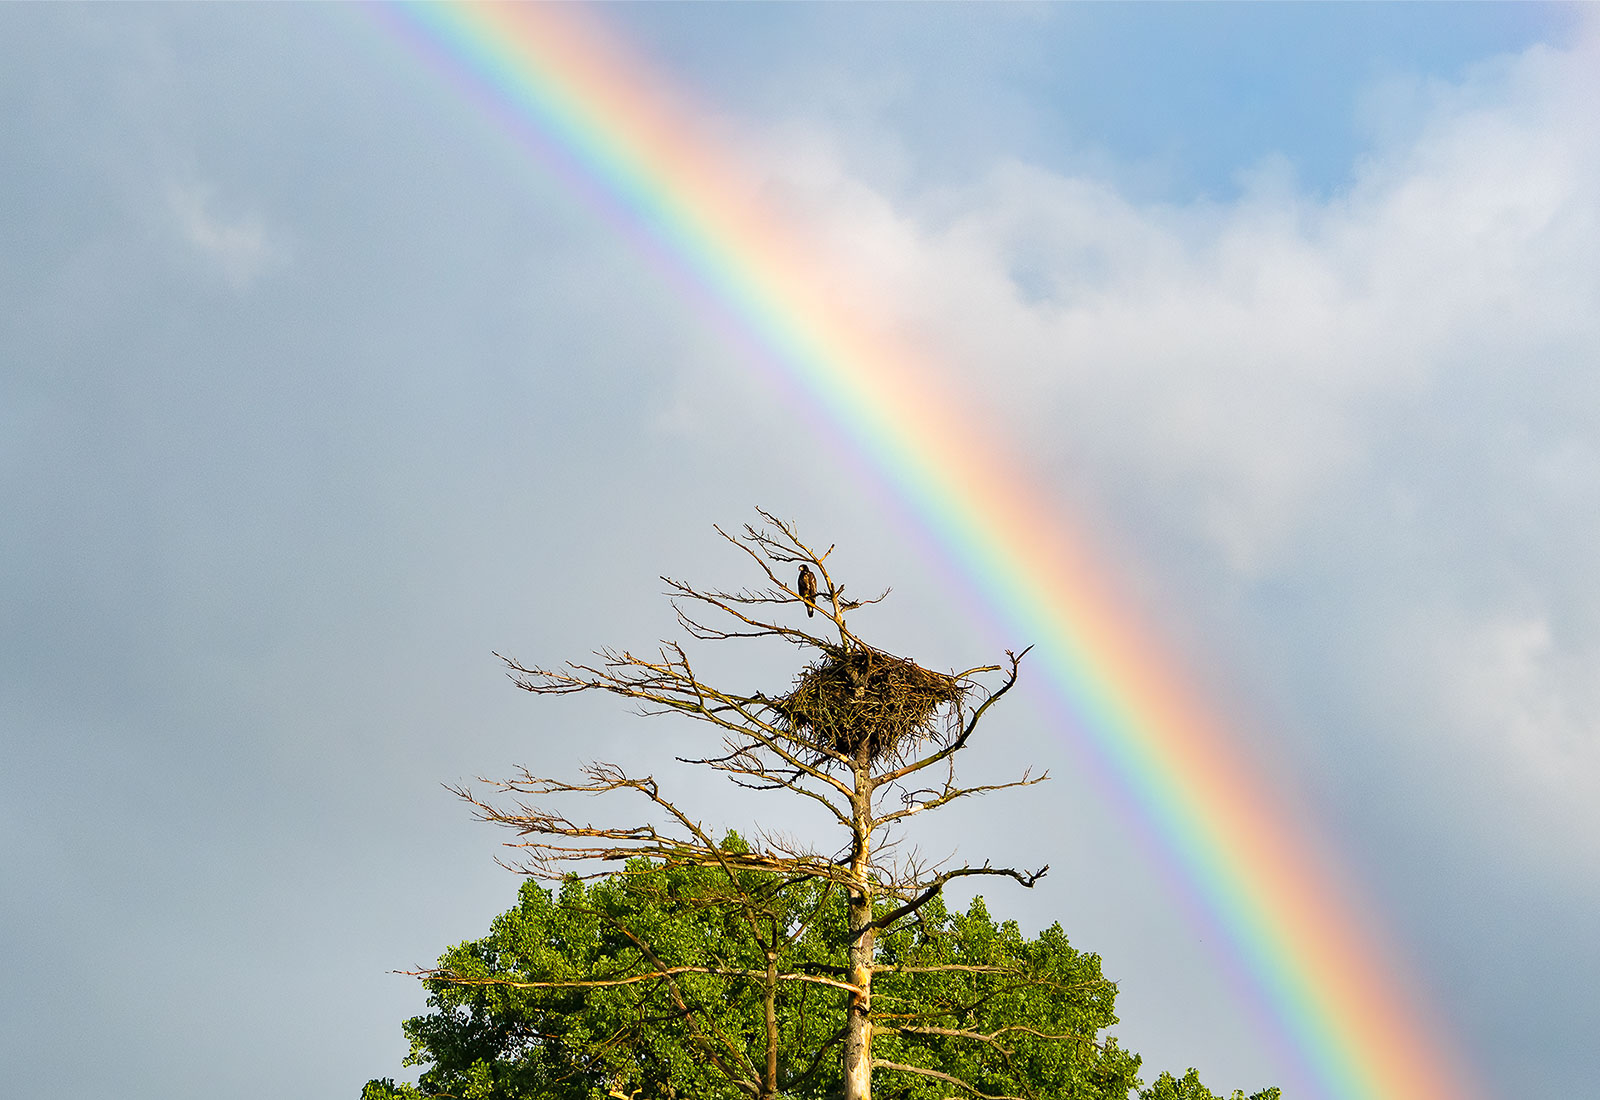 Juvenile Eagle perched by its birth nest and a rainbow